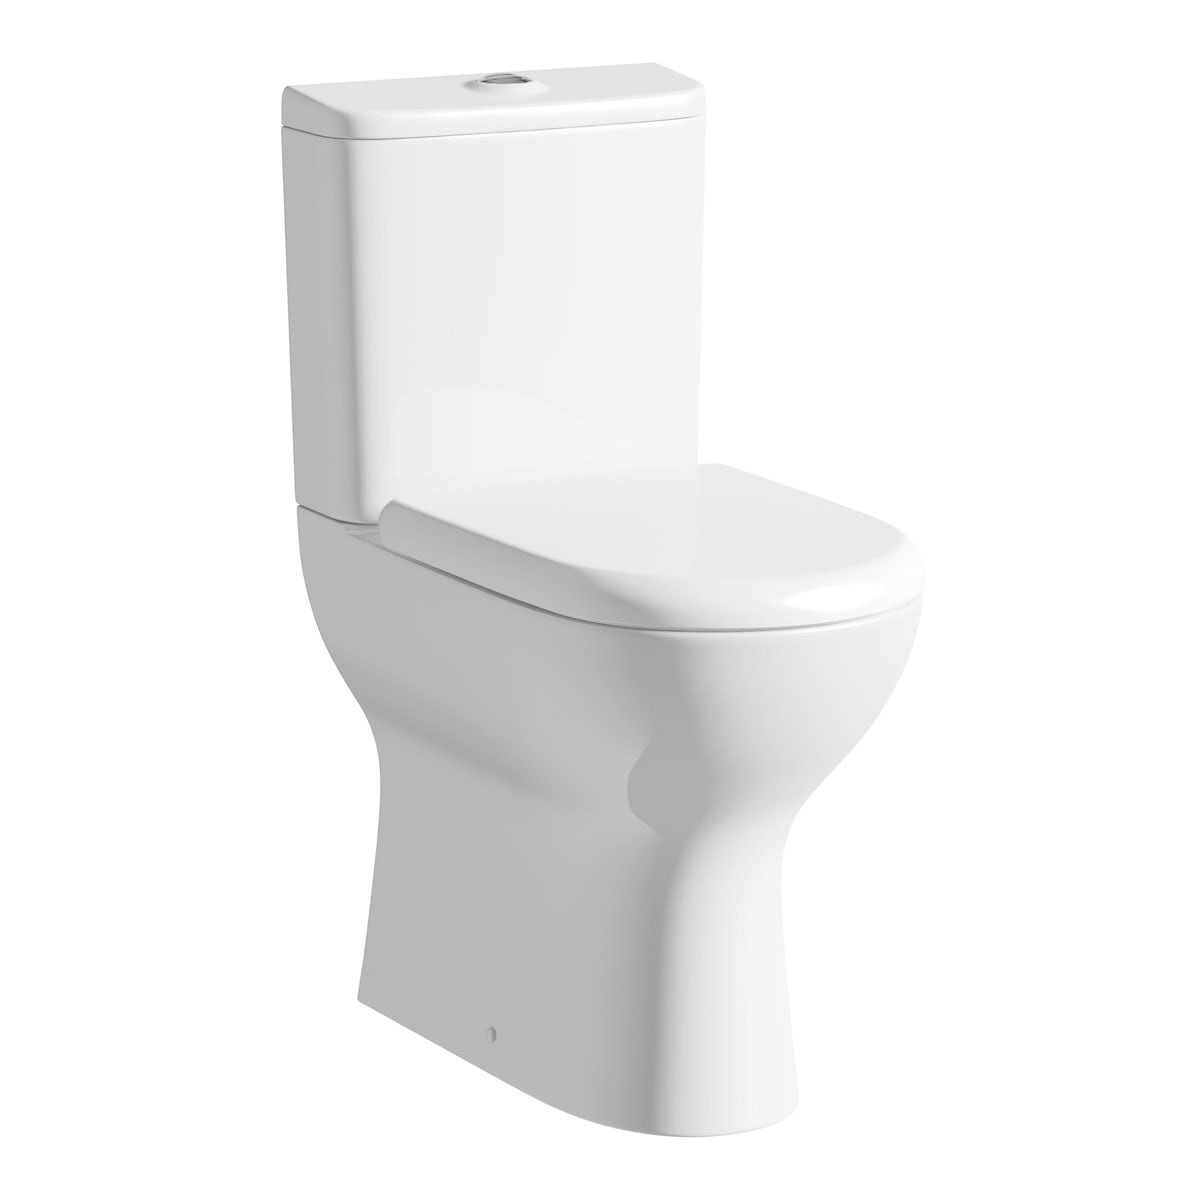 Fairbanks Raised Height Close Coupled Toilet inc. Luxury Soft Close Seat